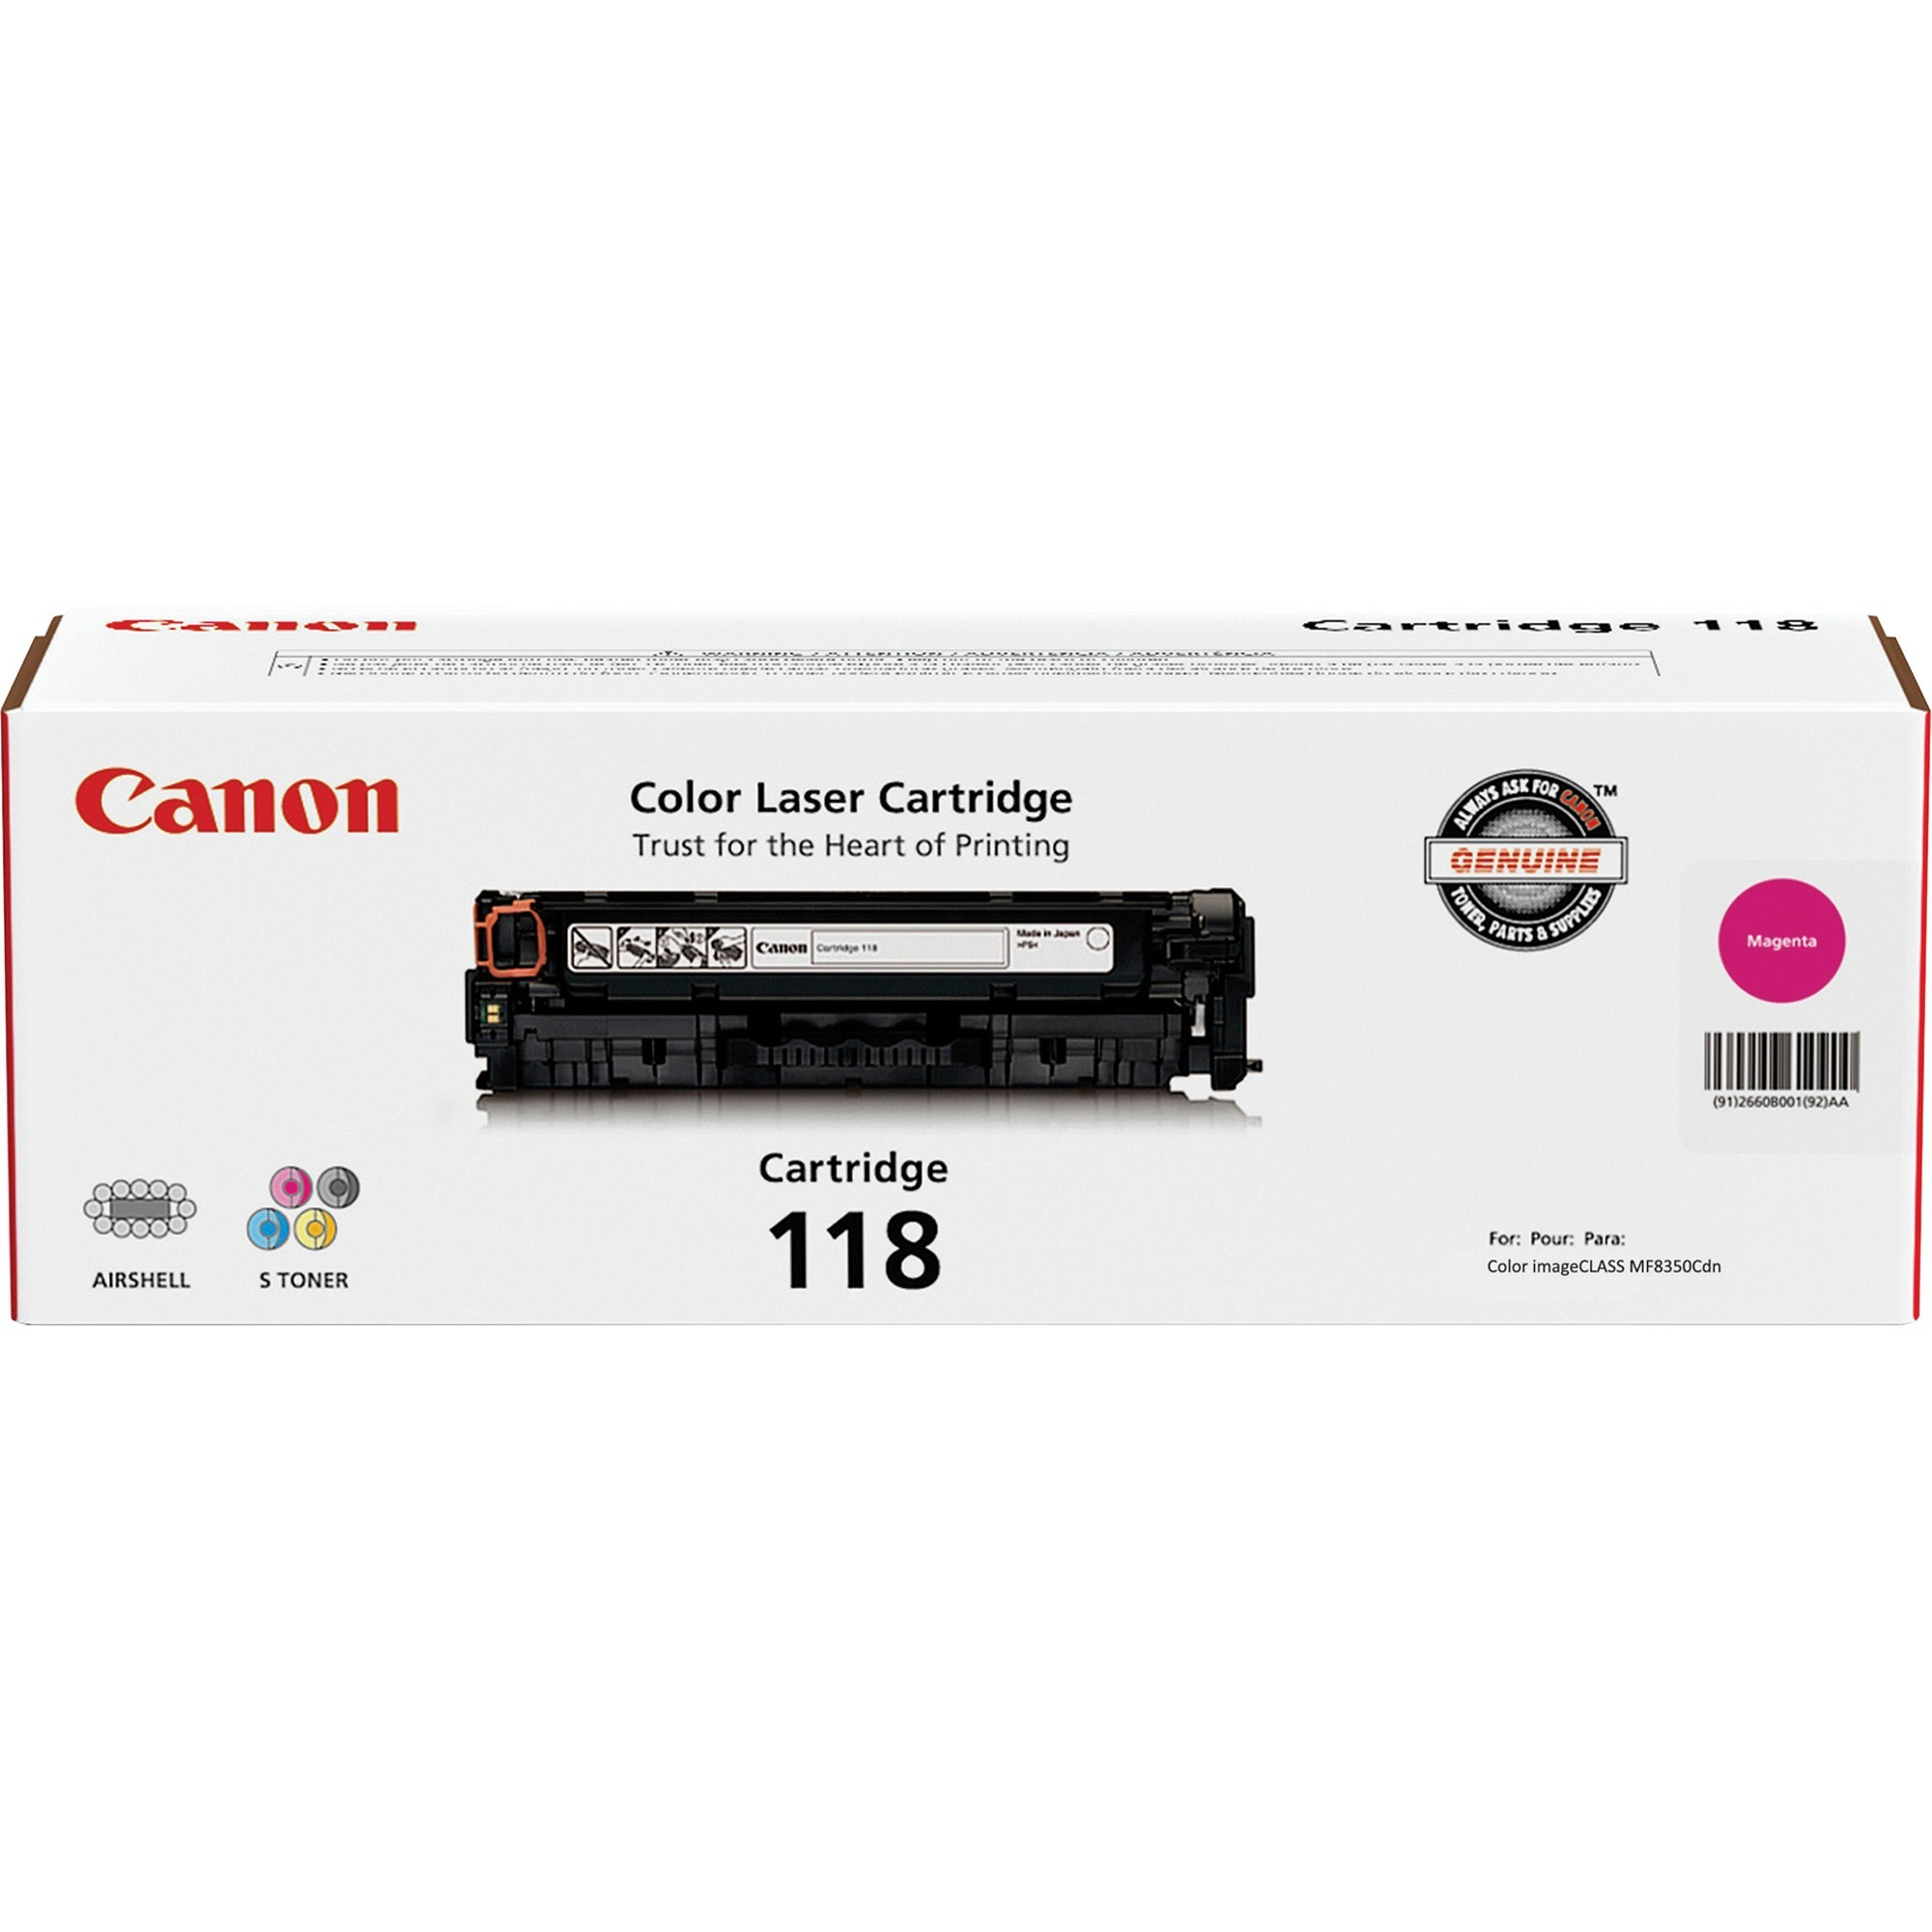 Canon, CNMCRTDG118MA, CRTDG118 Toner Cartridge, 1 Each